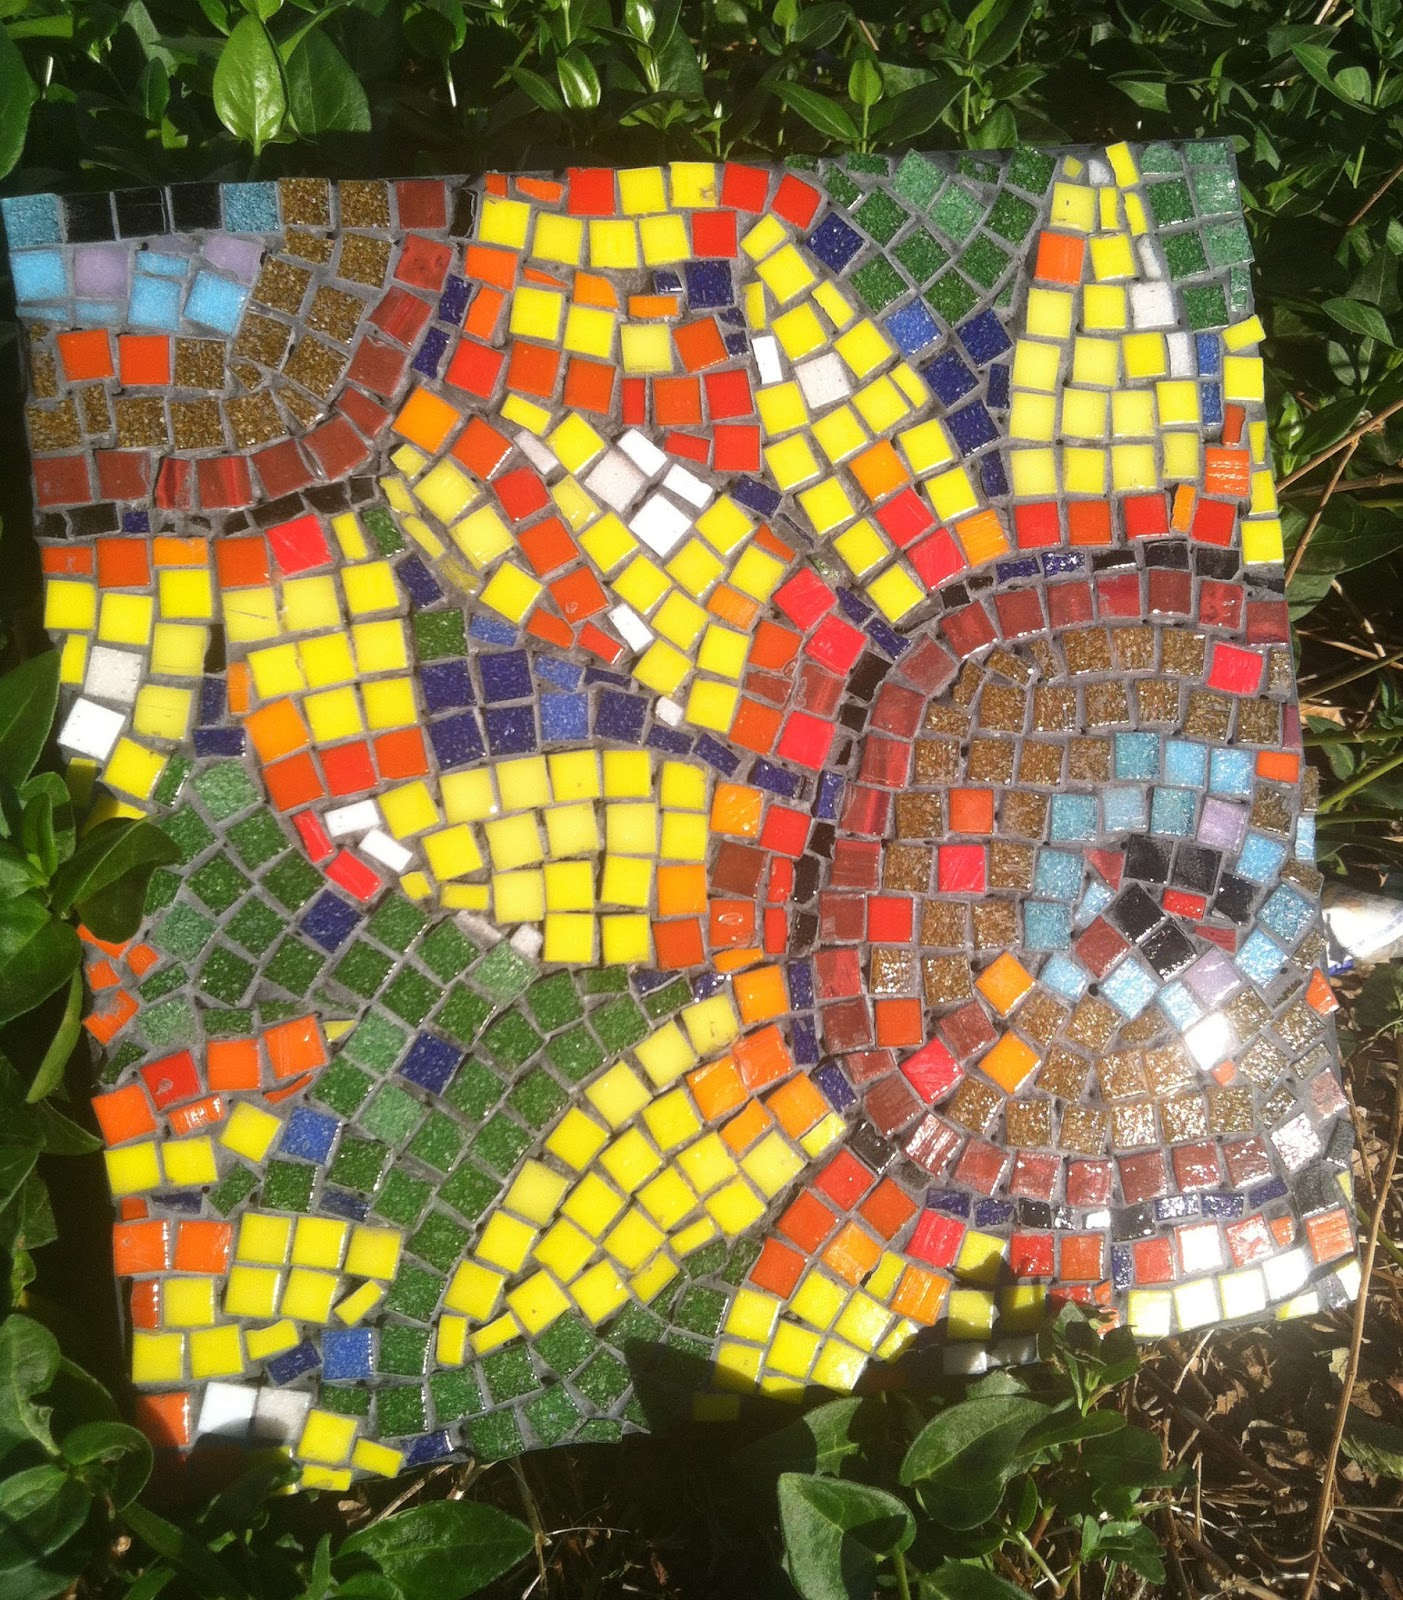 Http Flyingshoesstudio Blogspot Ca 2013 05 After School Mosaic Class Html